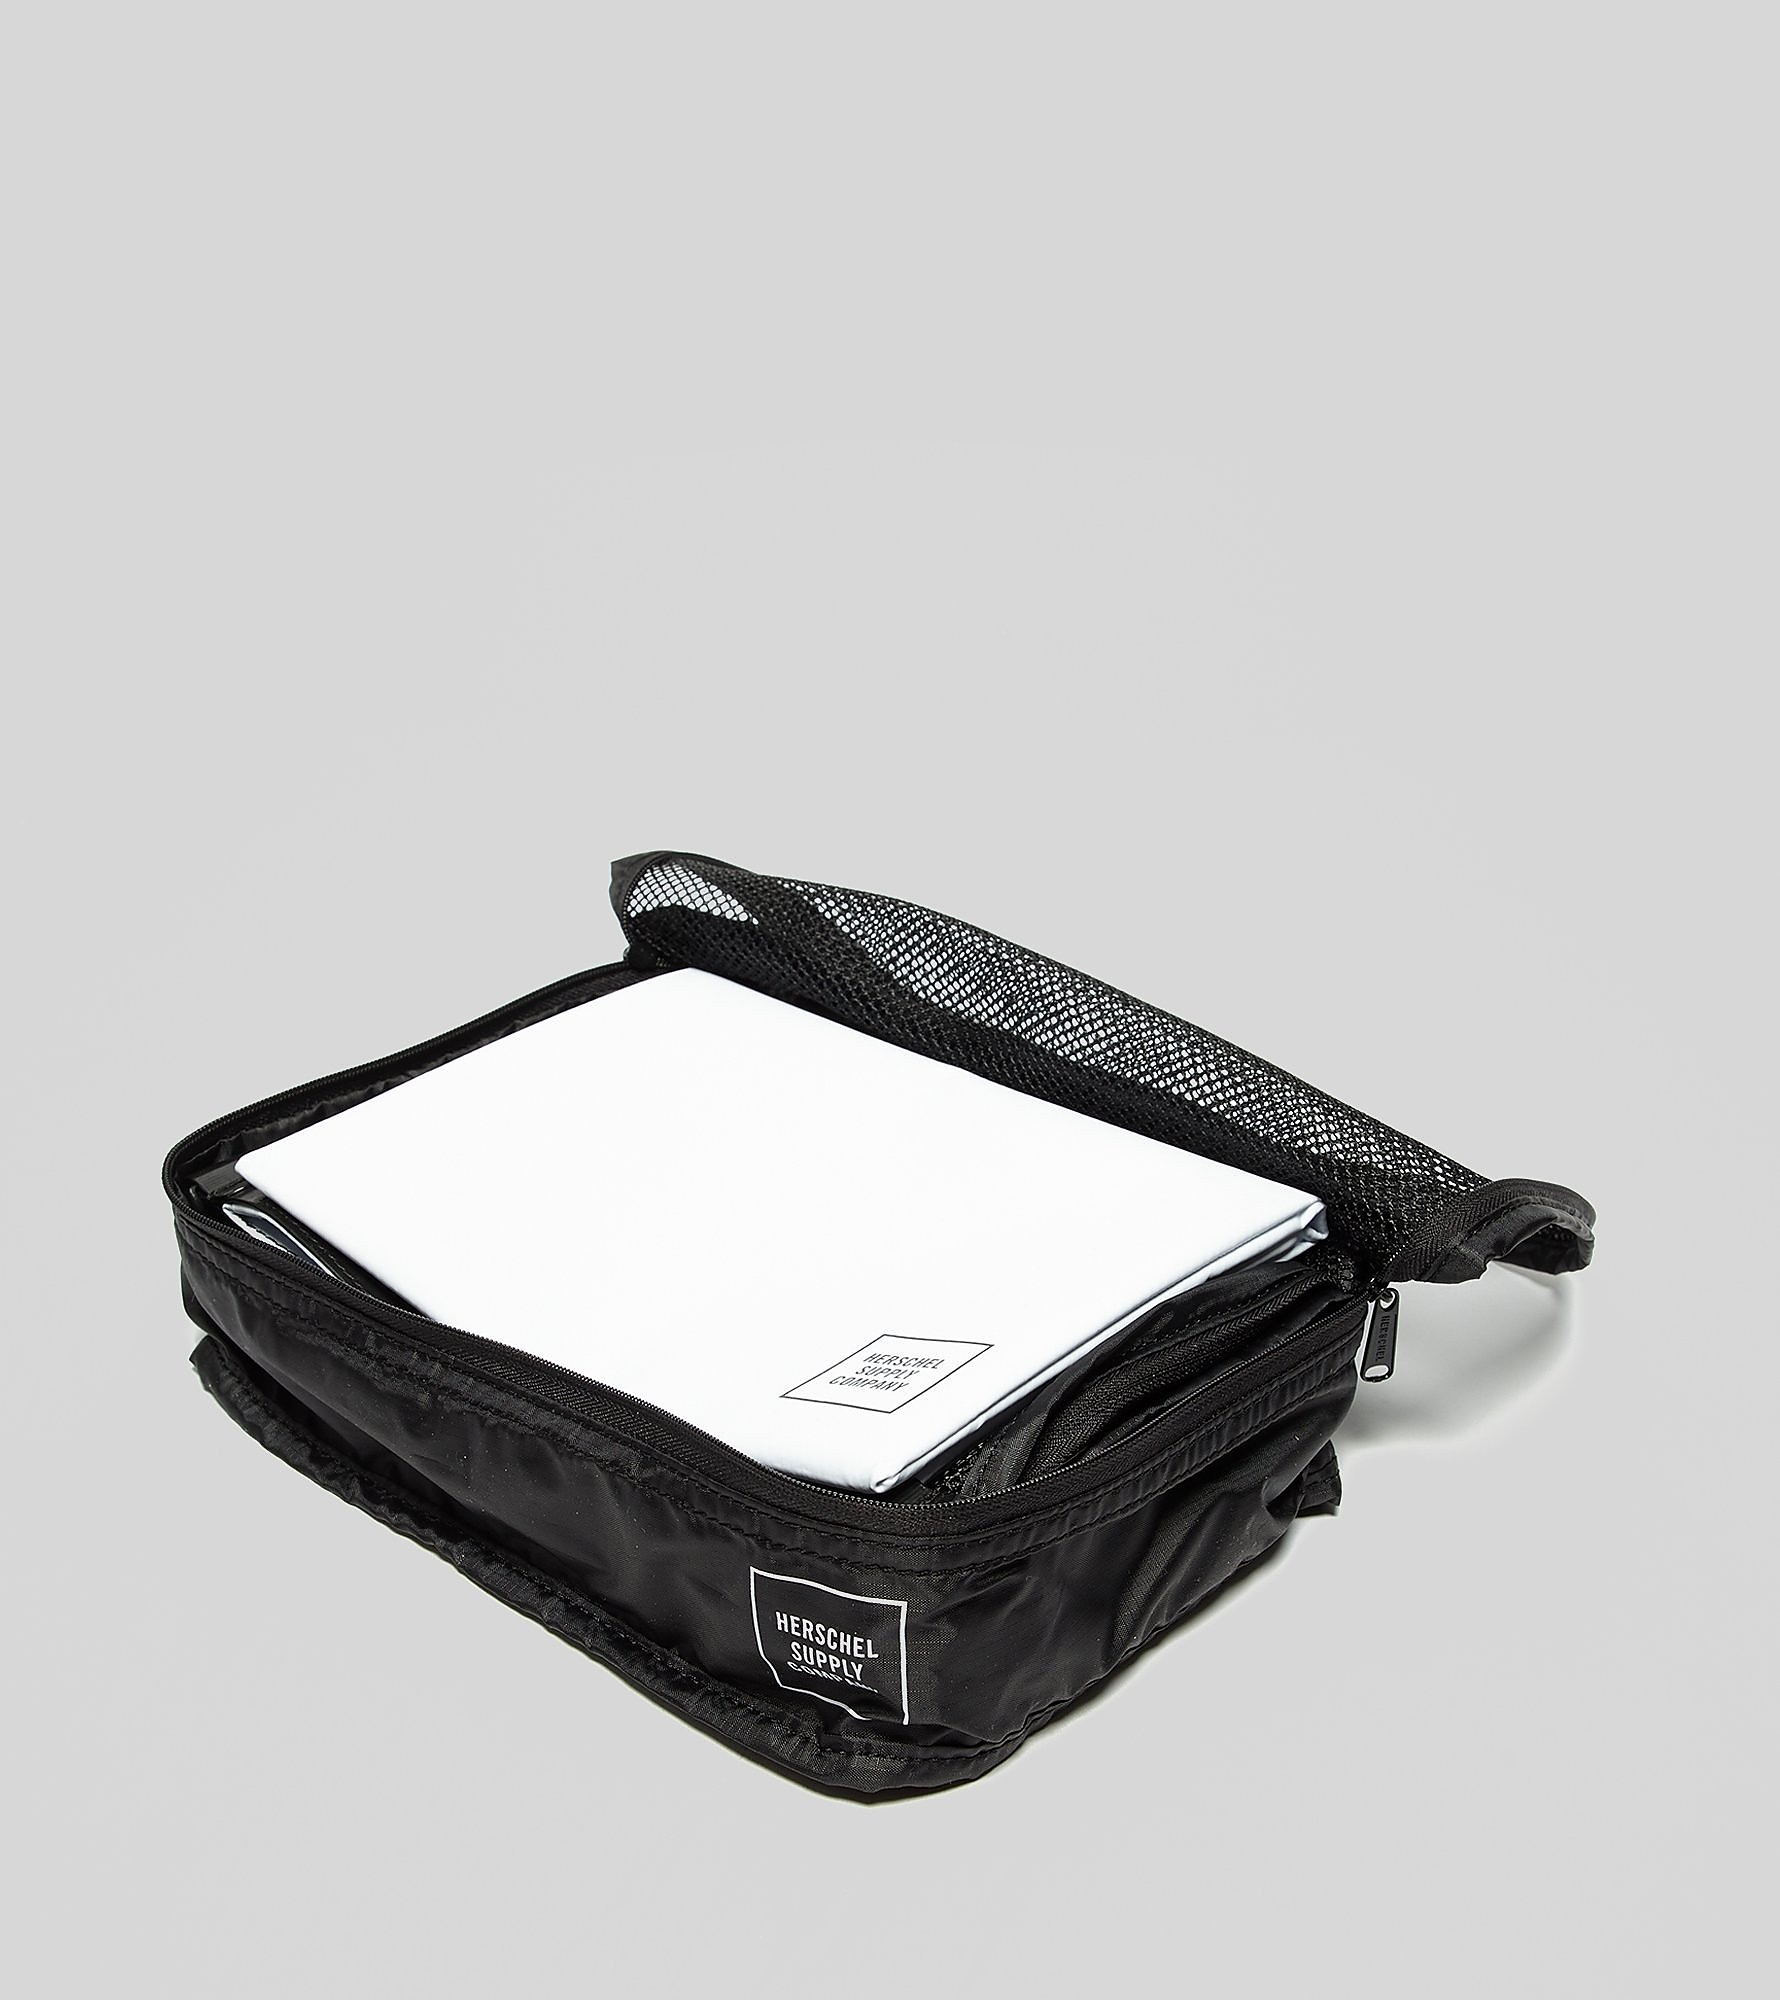 Herschel Supply Co Travel System